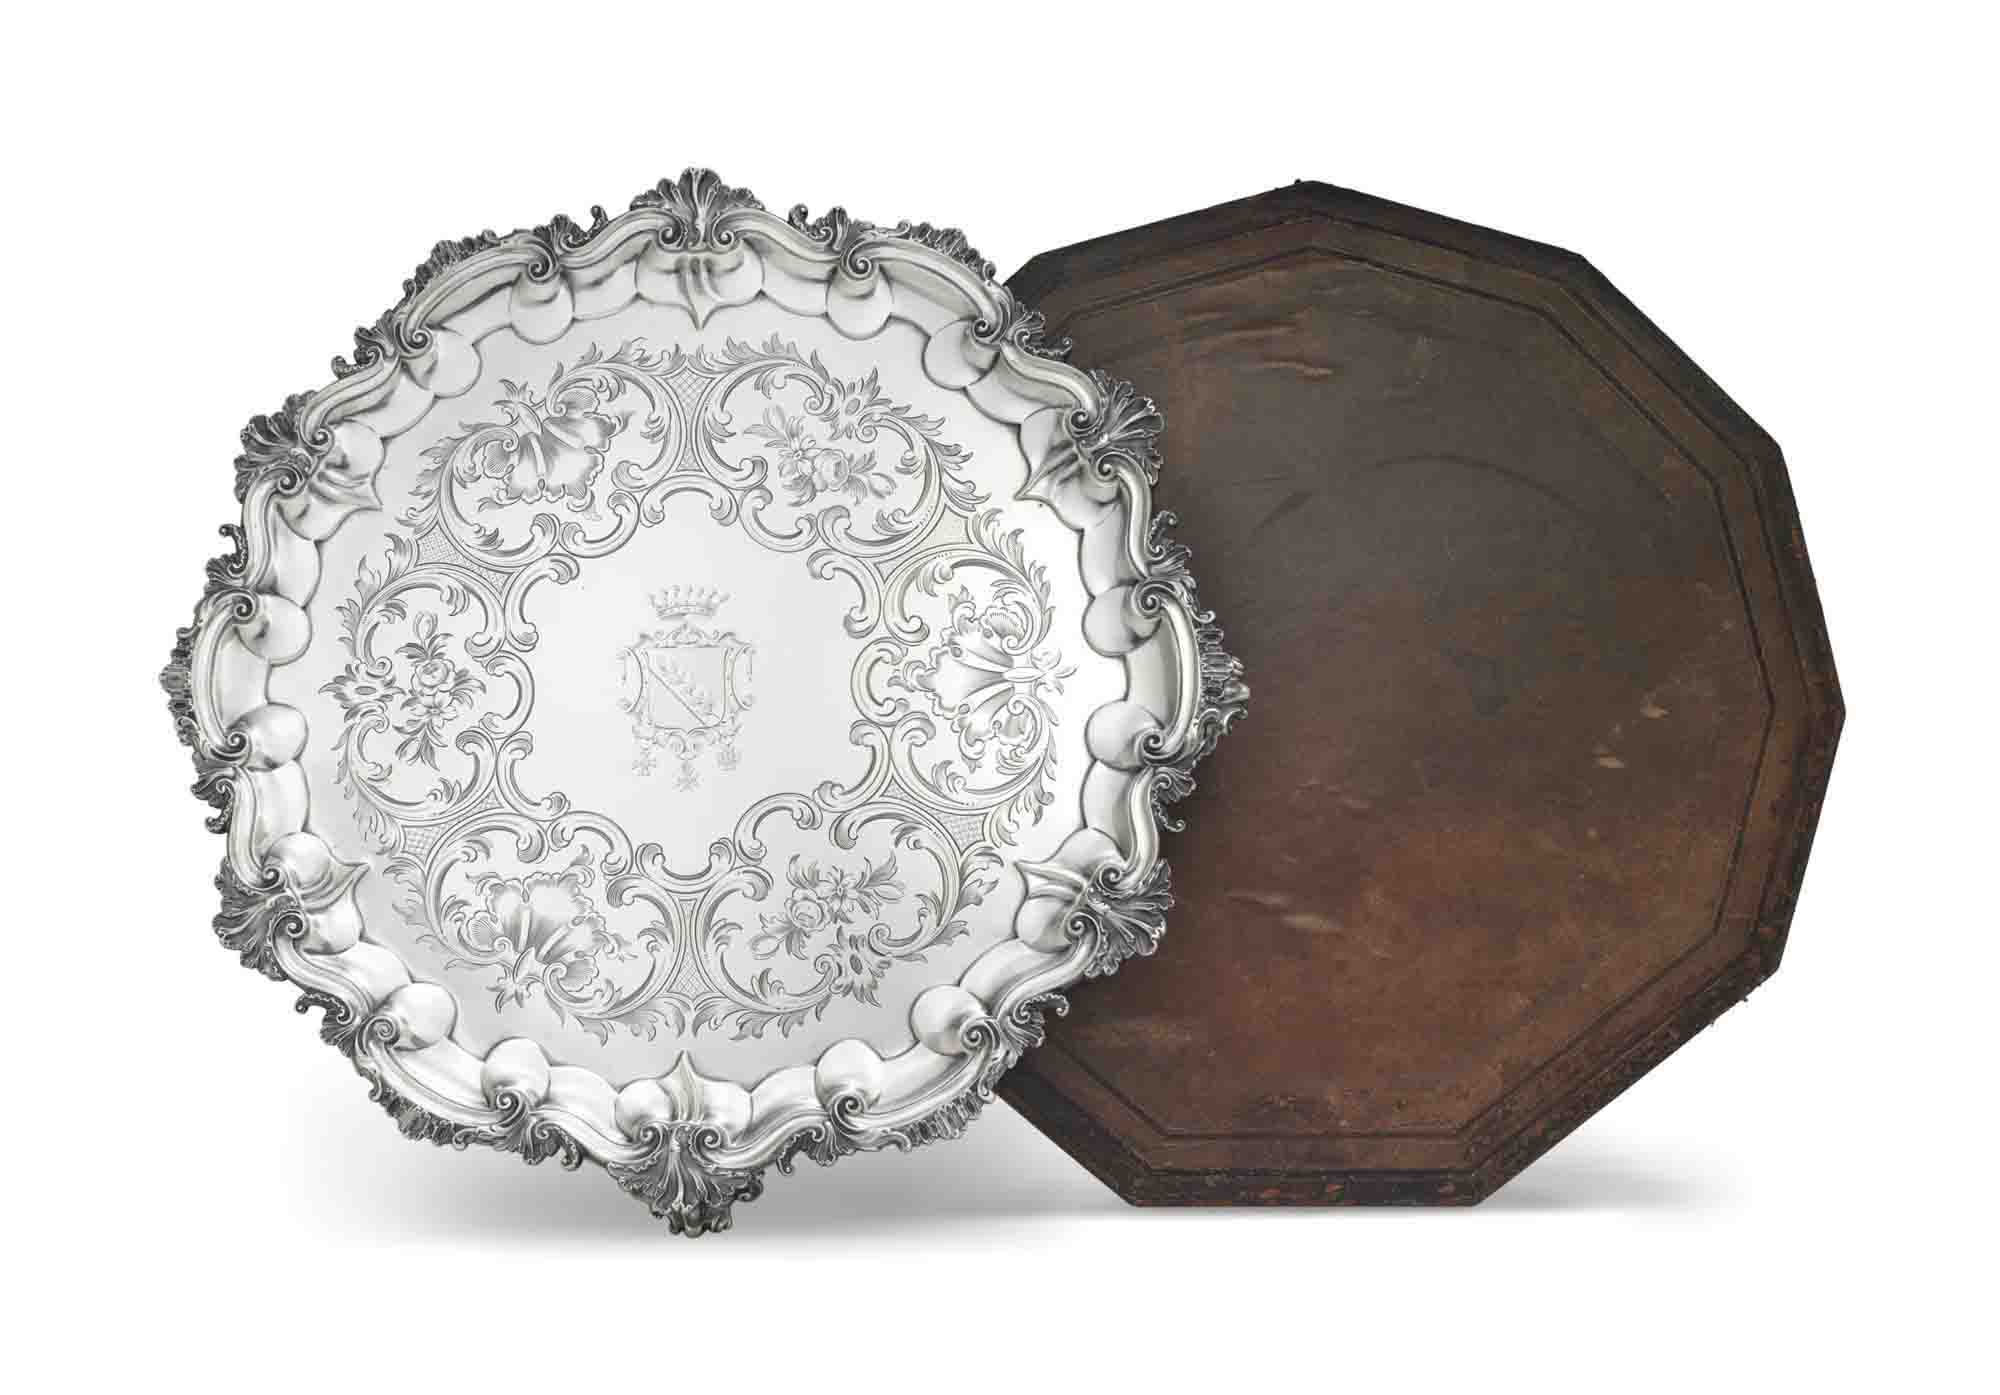 A LARGE VICTORIAN SILVER SALVER IN LEATHER CASE